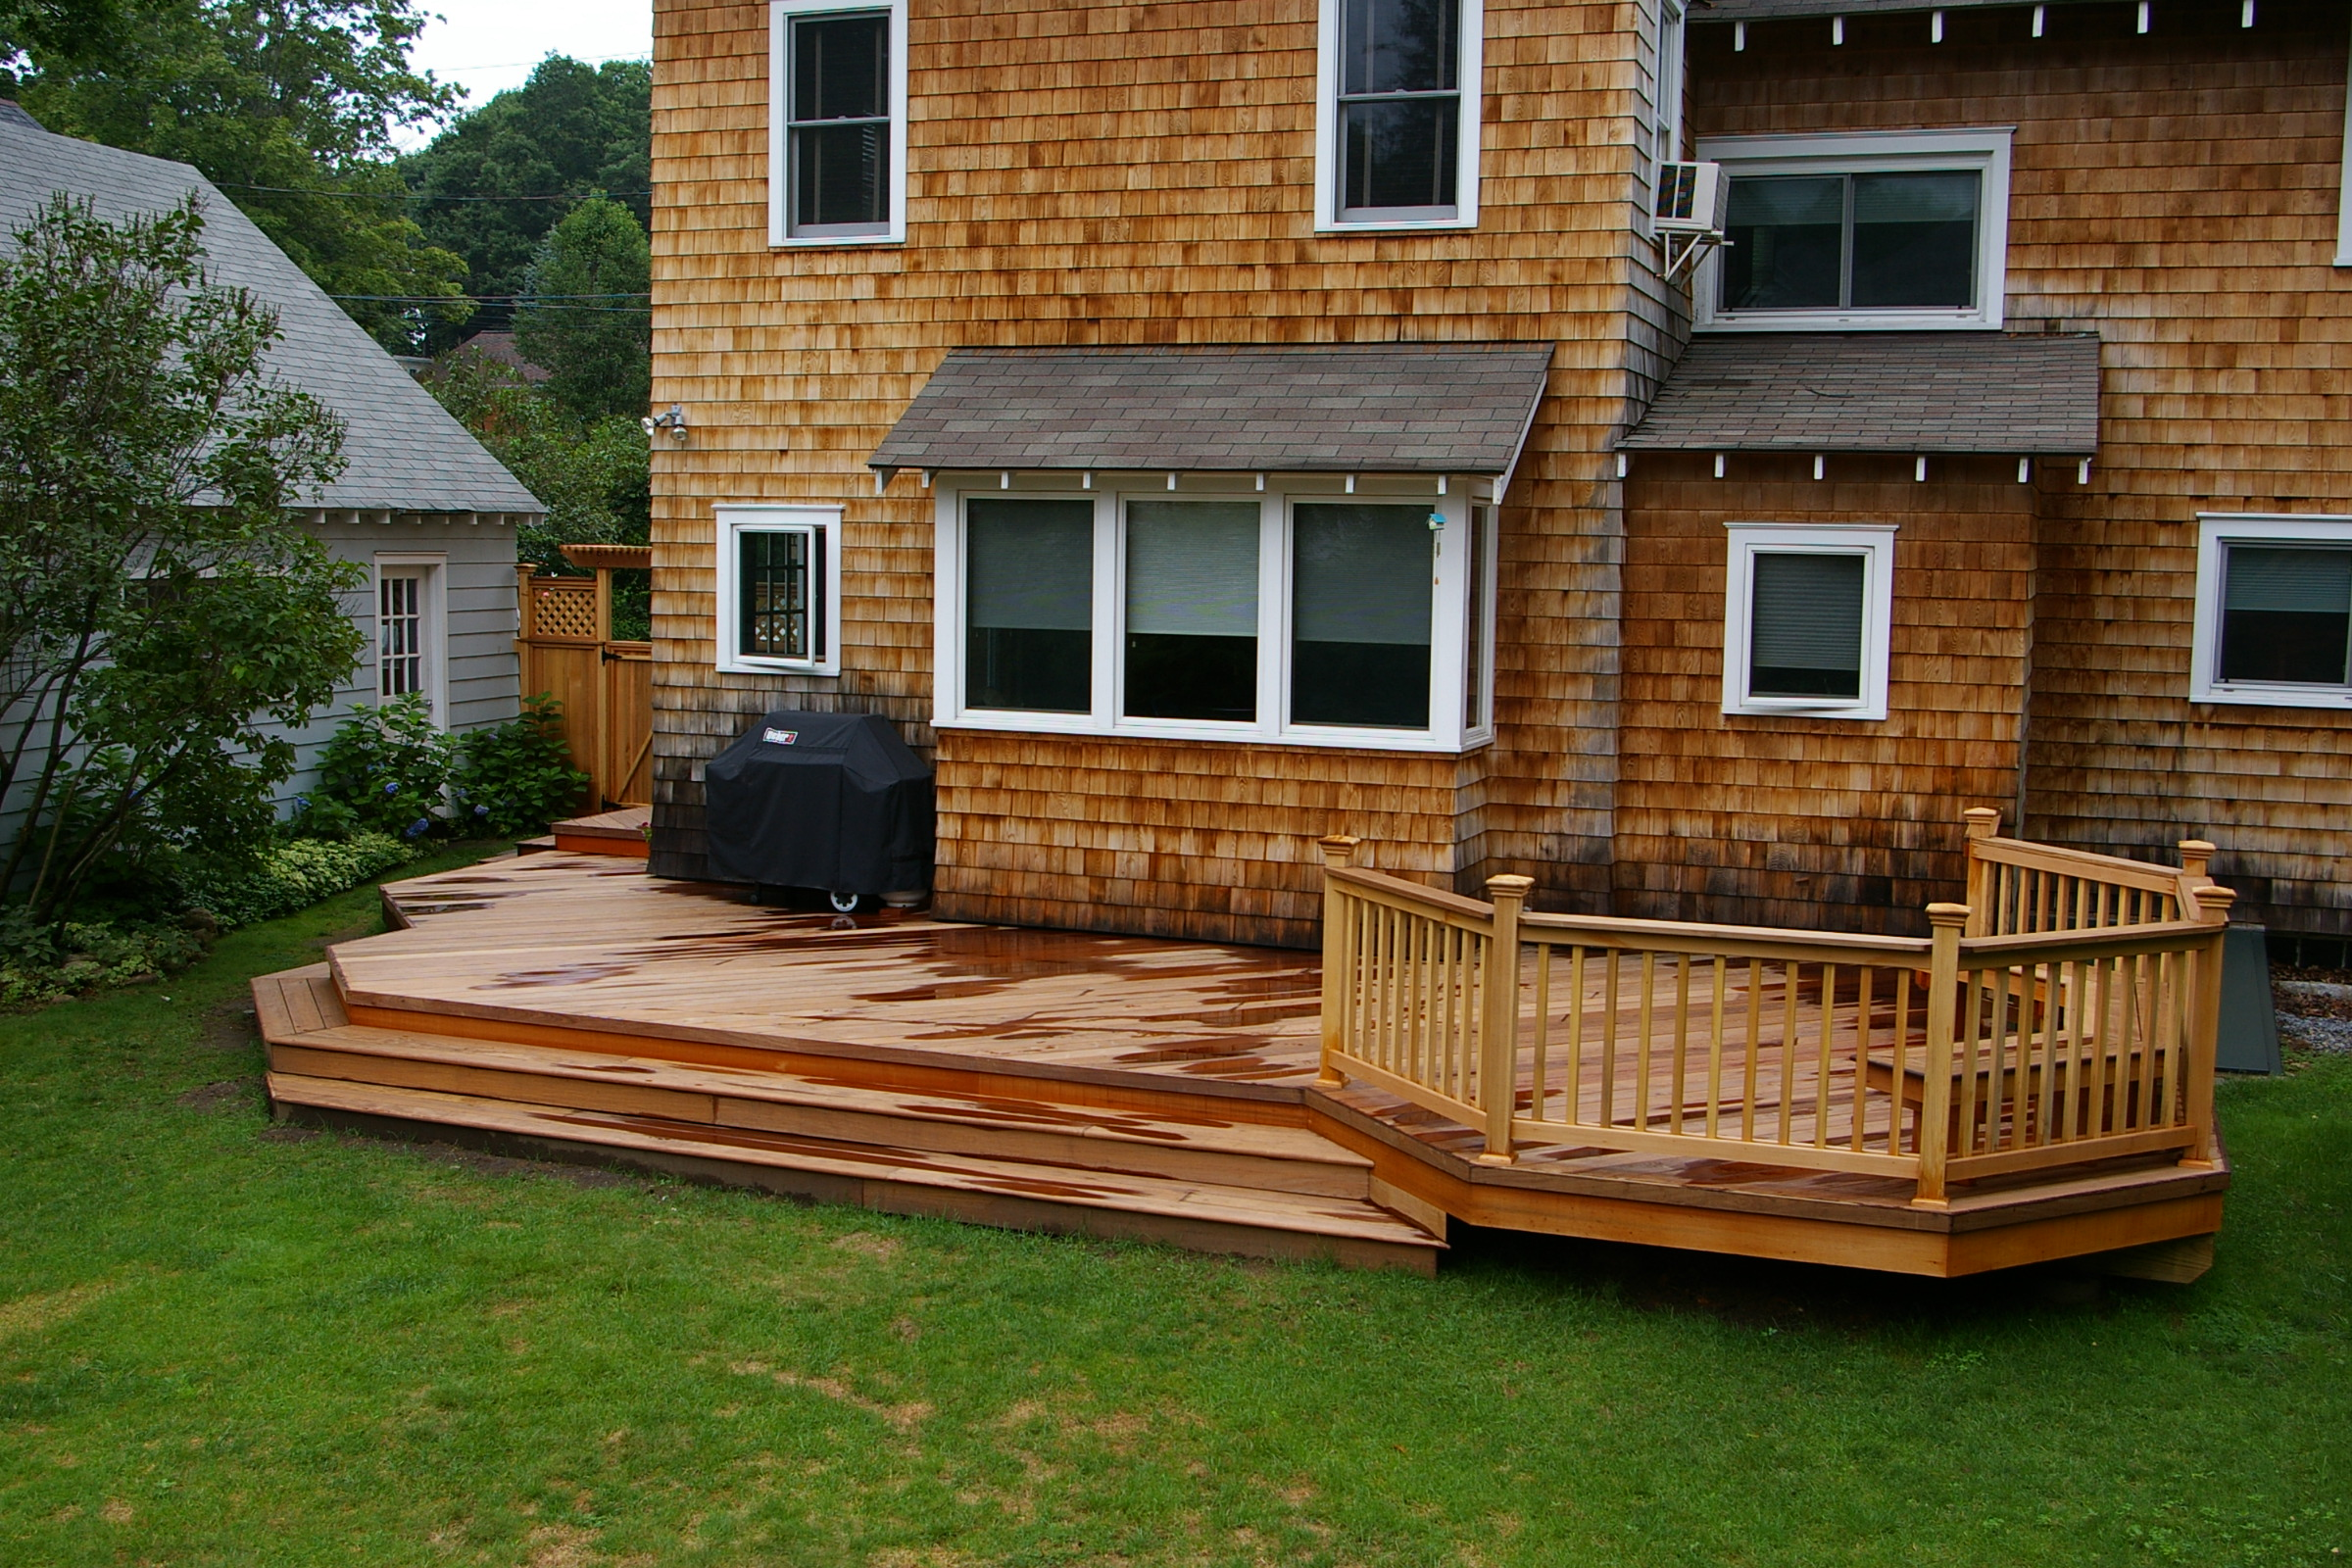 Awesome Home Deck Designs - HomesFeed on Back Deck Designs For Houses id=84643